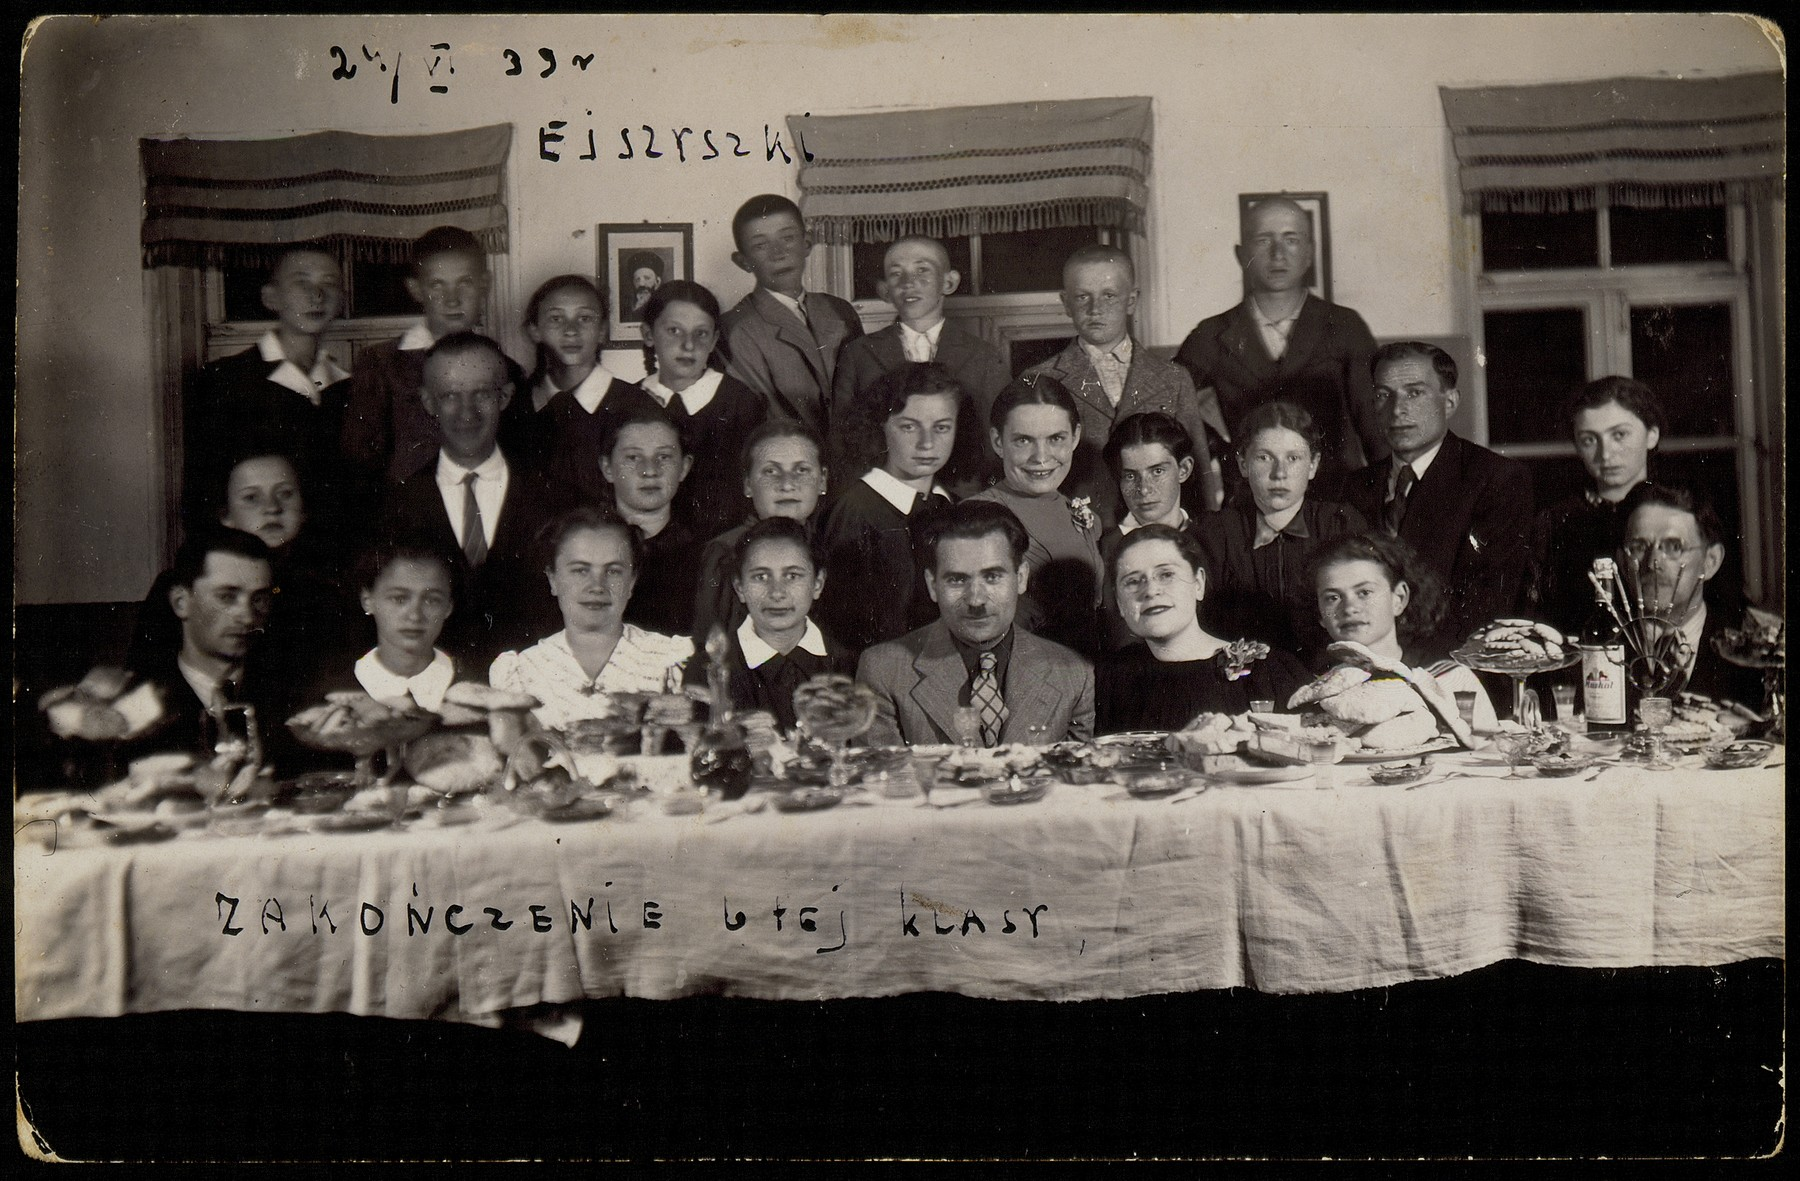 Students from the Hebrew School in Eisiskes celebrate their graduation.  Sitting second from left is Leilke Shesko.  Fourth from left is Sheine Dwilanski. Most of those pictured were murdered during the Holocaust.